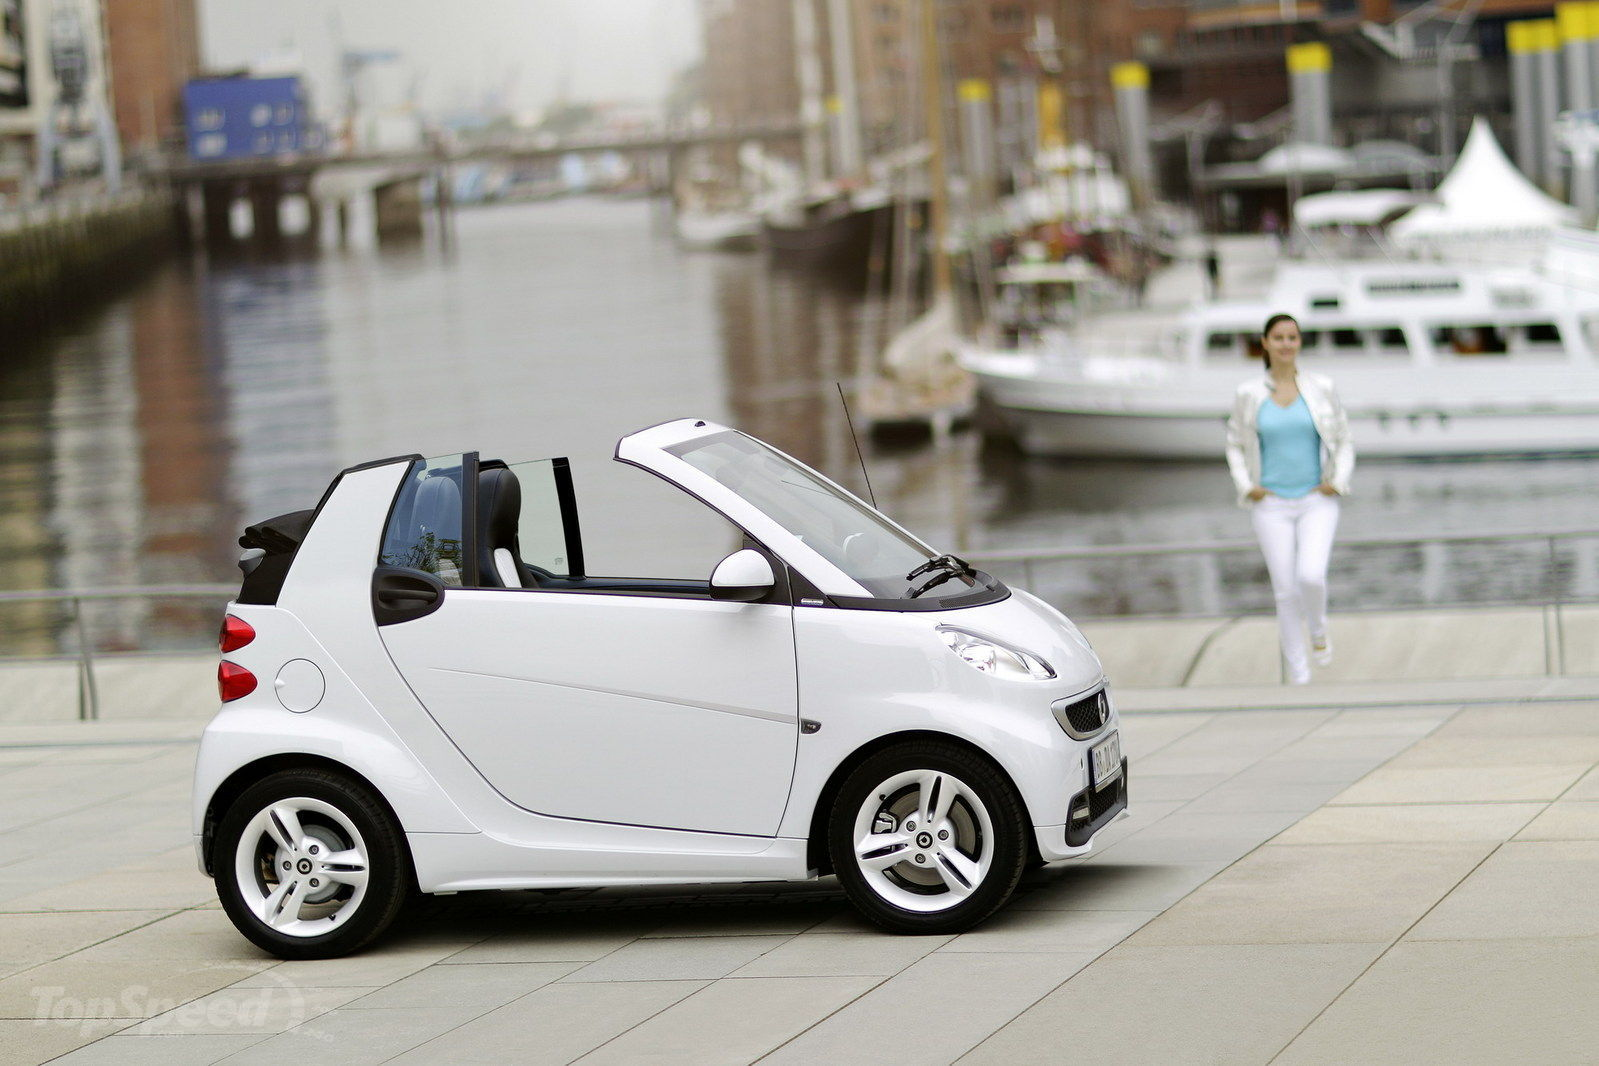 http://pictures.topspeed.com/IMG/crop/201206/smart-fortwo-iceshin-28_1600x0w.jpg